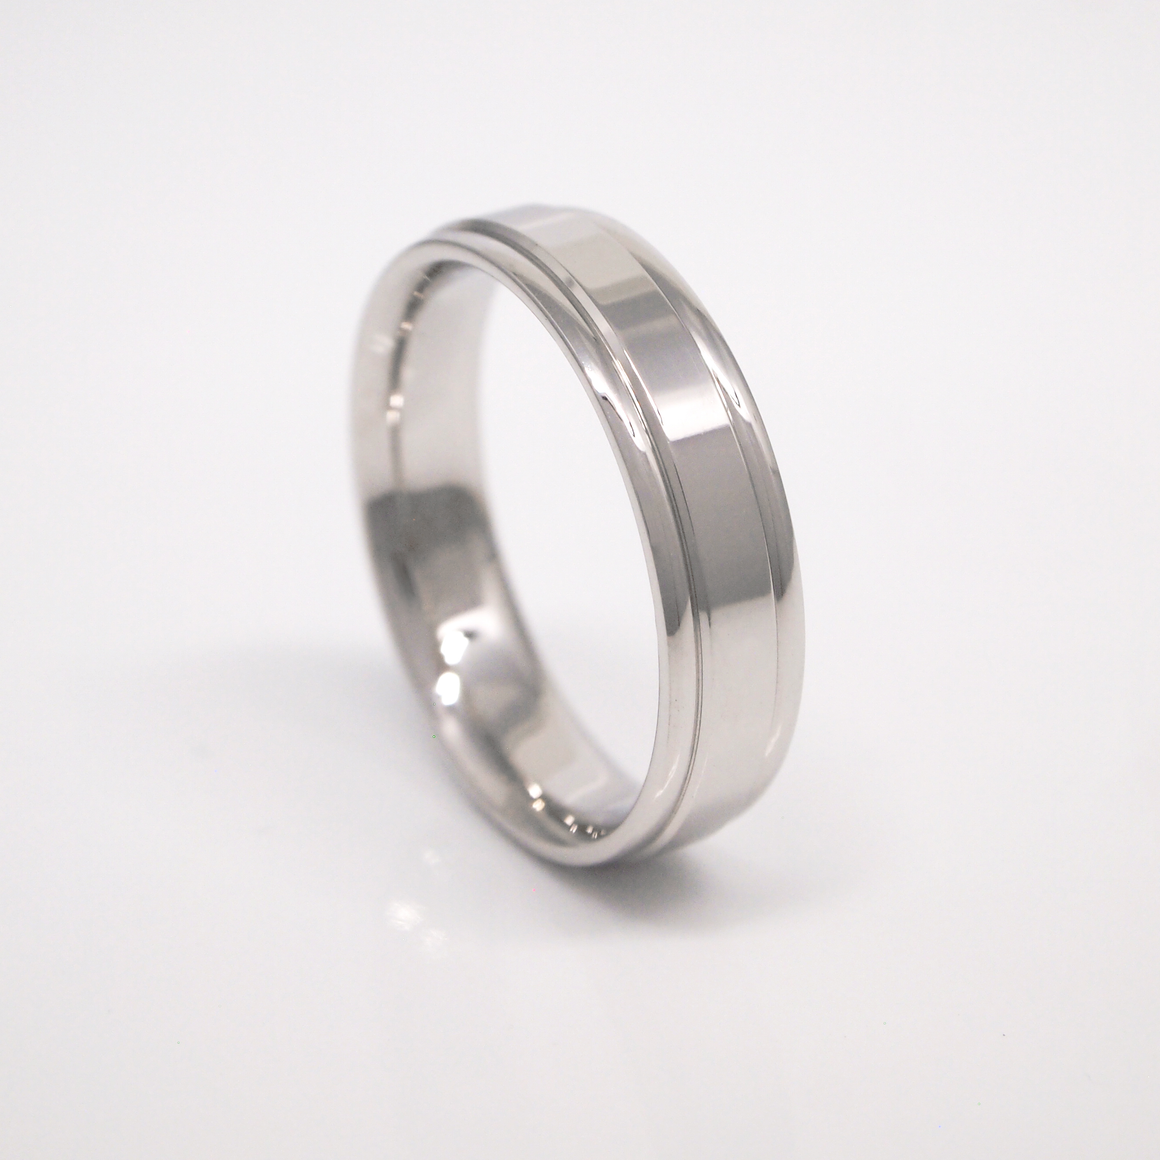 14K white gold 5mm men's wedding band featuring a high polish finish and rolled edges.